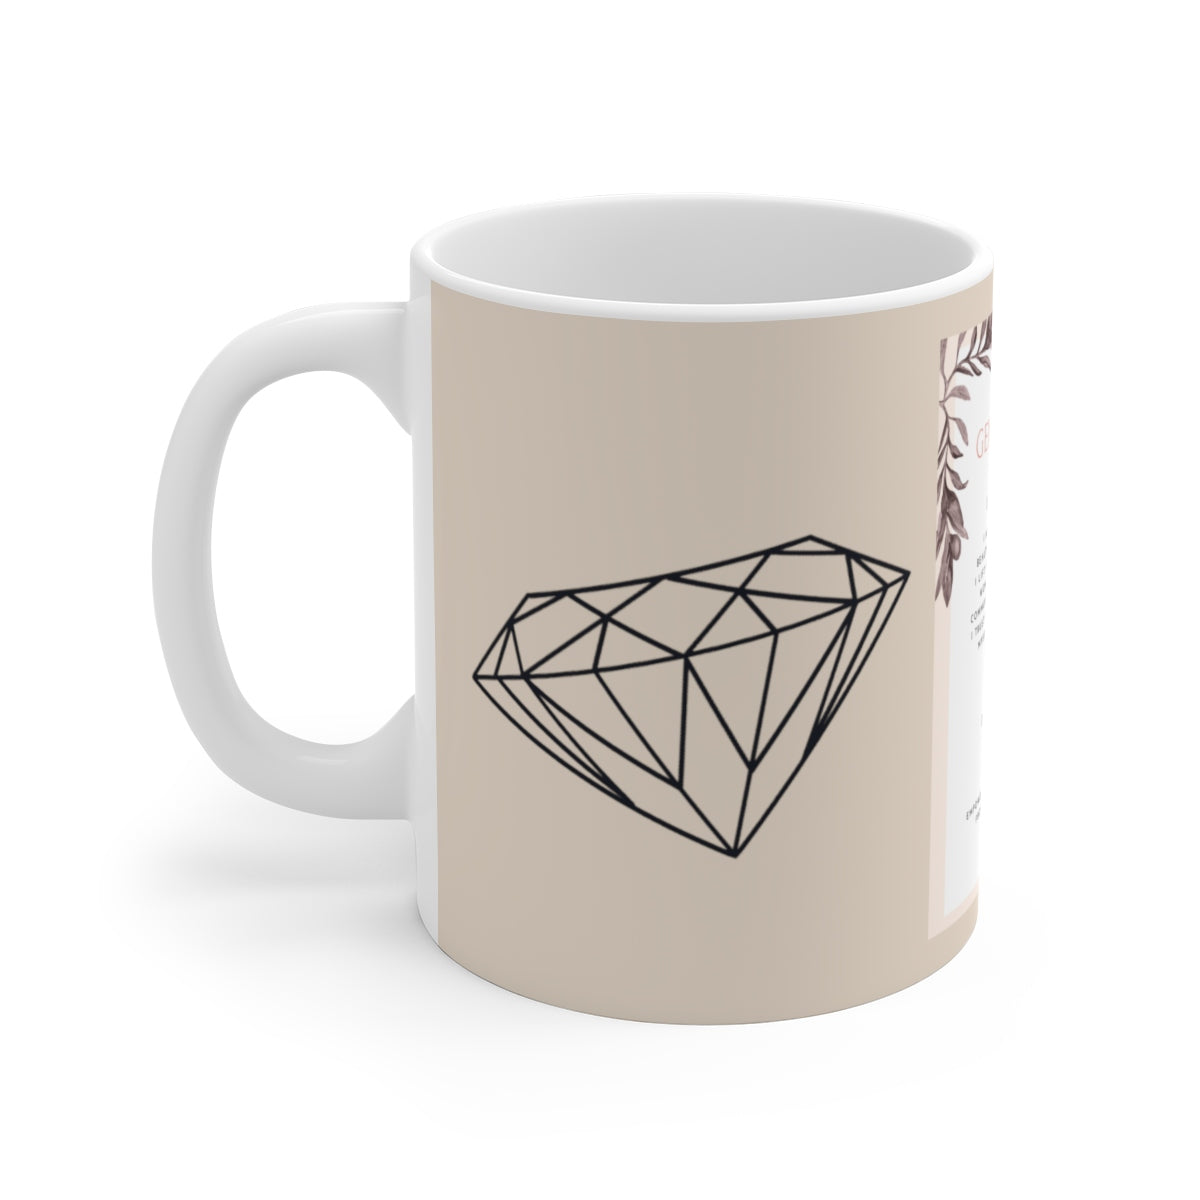 Gem Mantra Ceramic Mug